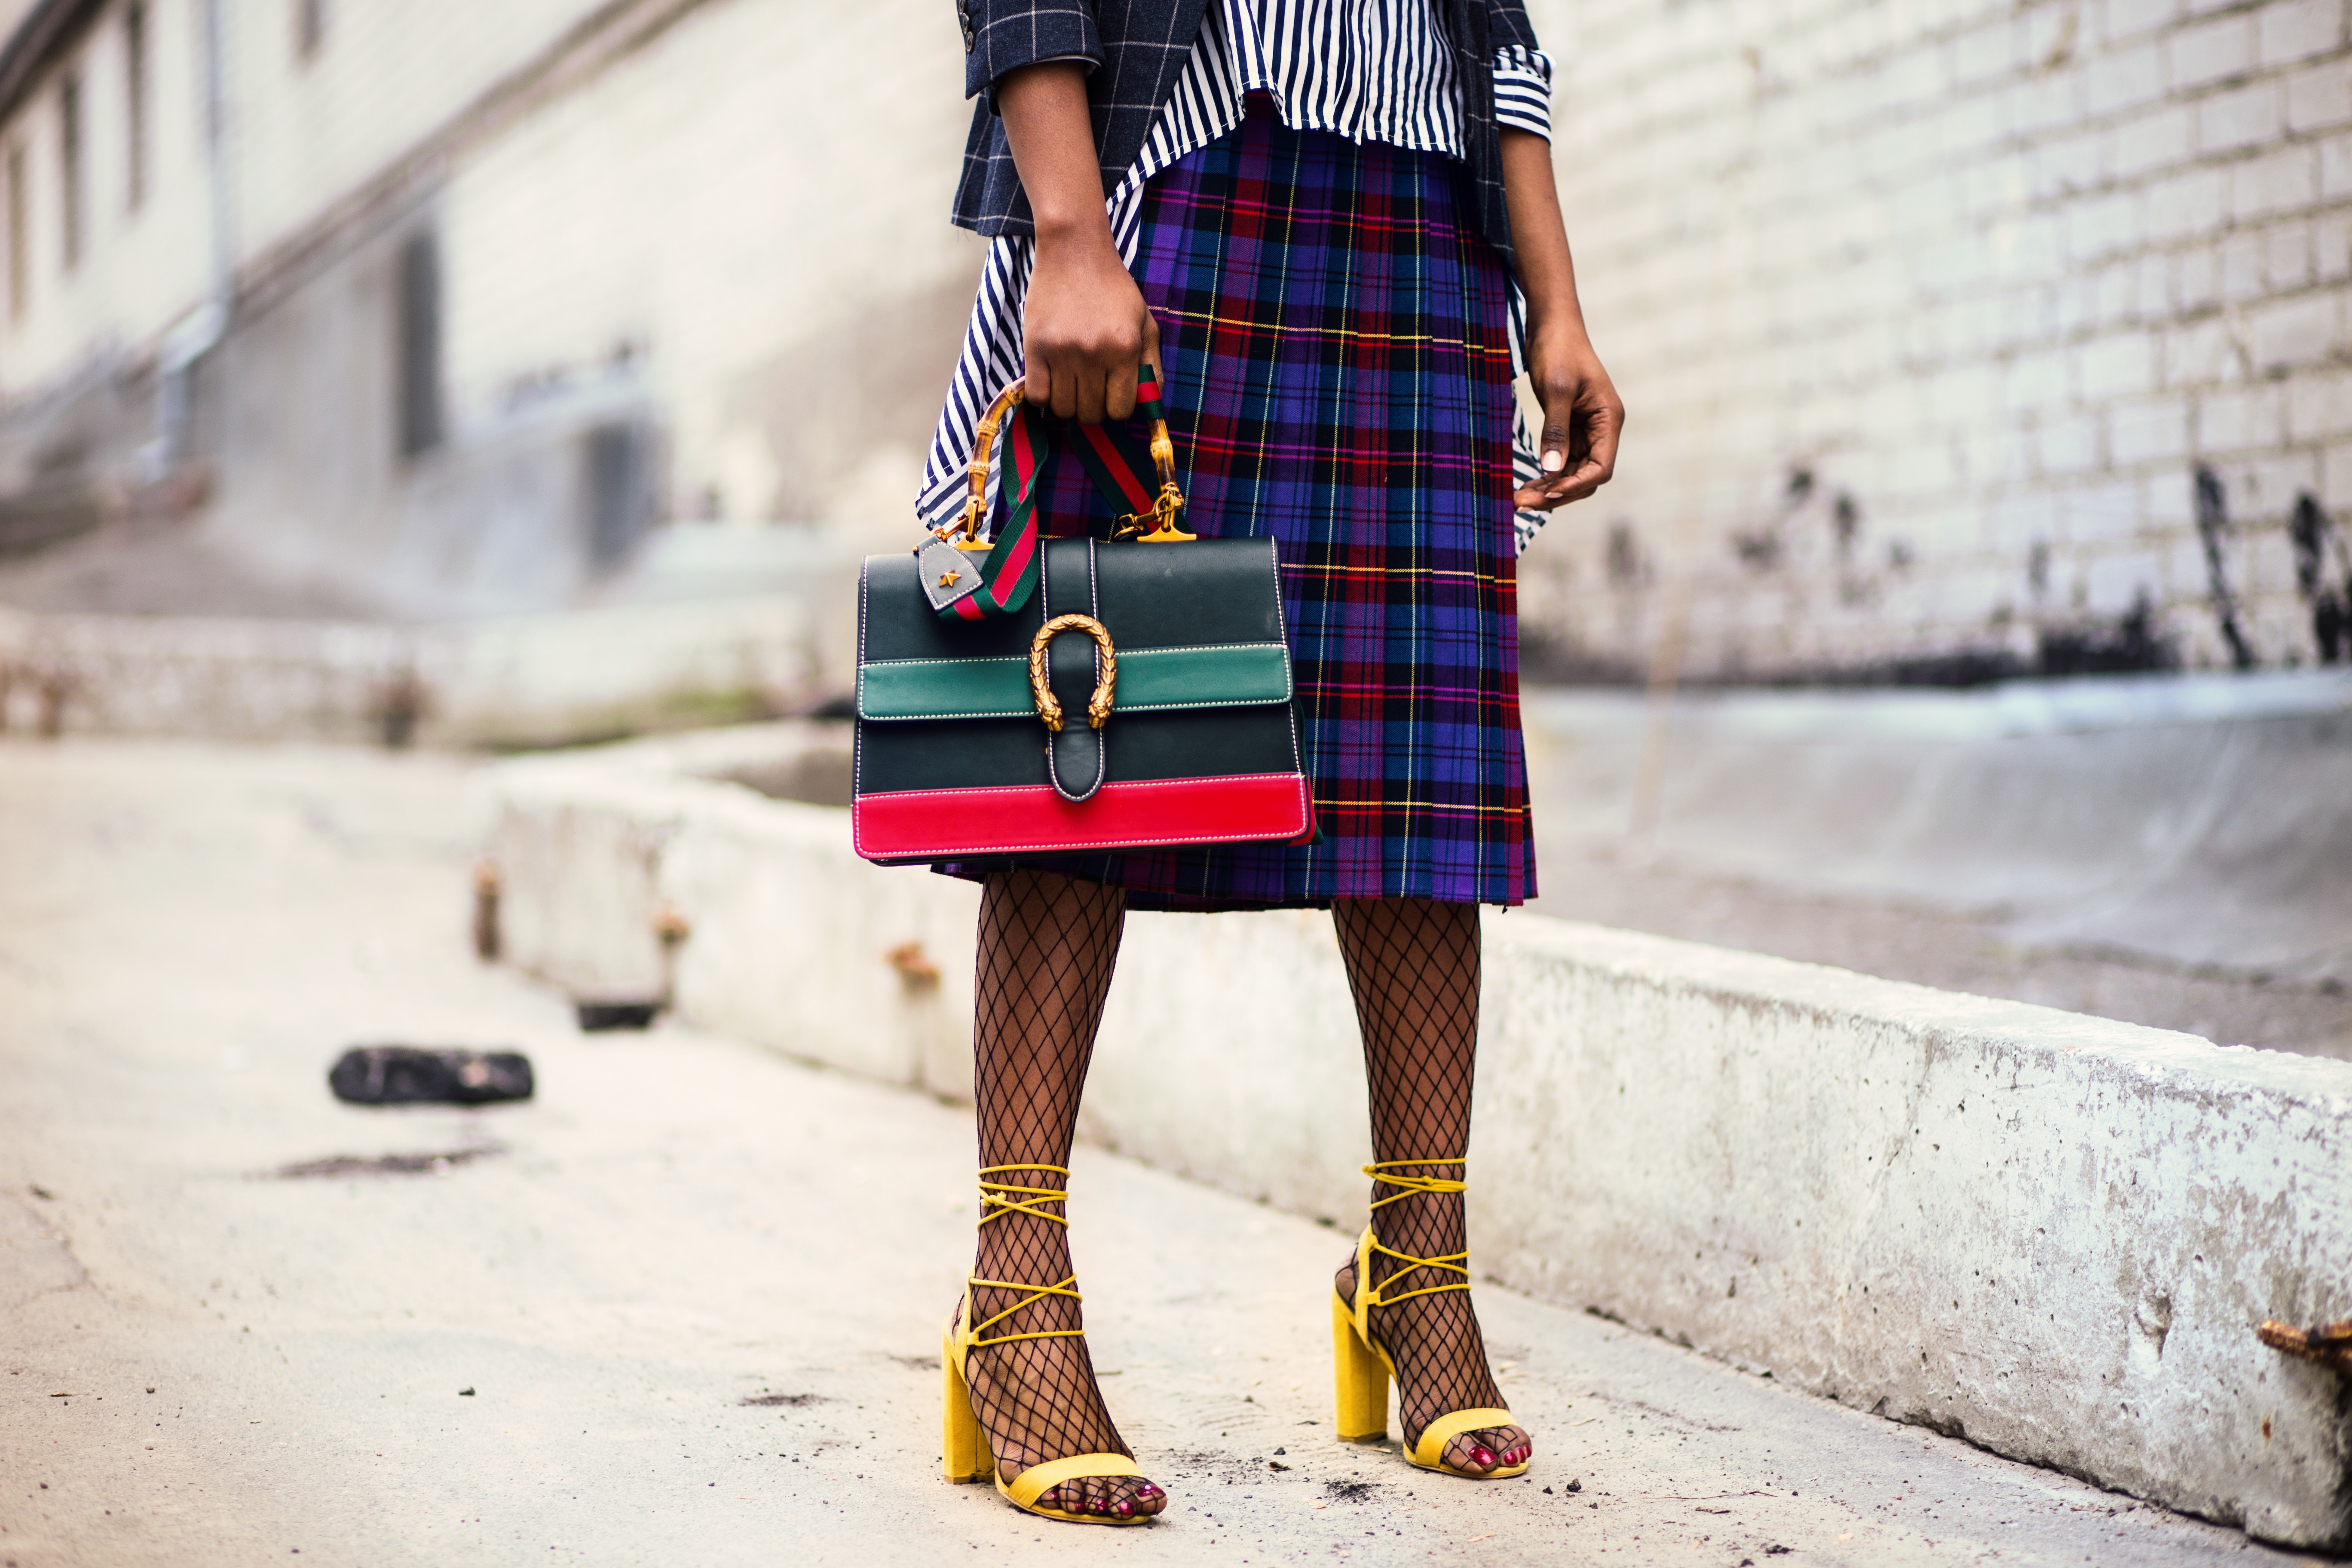 Woman holding green and red leather handbag photo